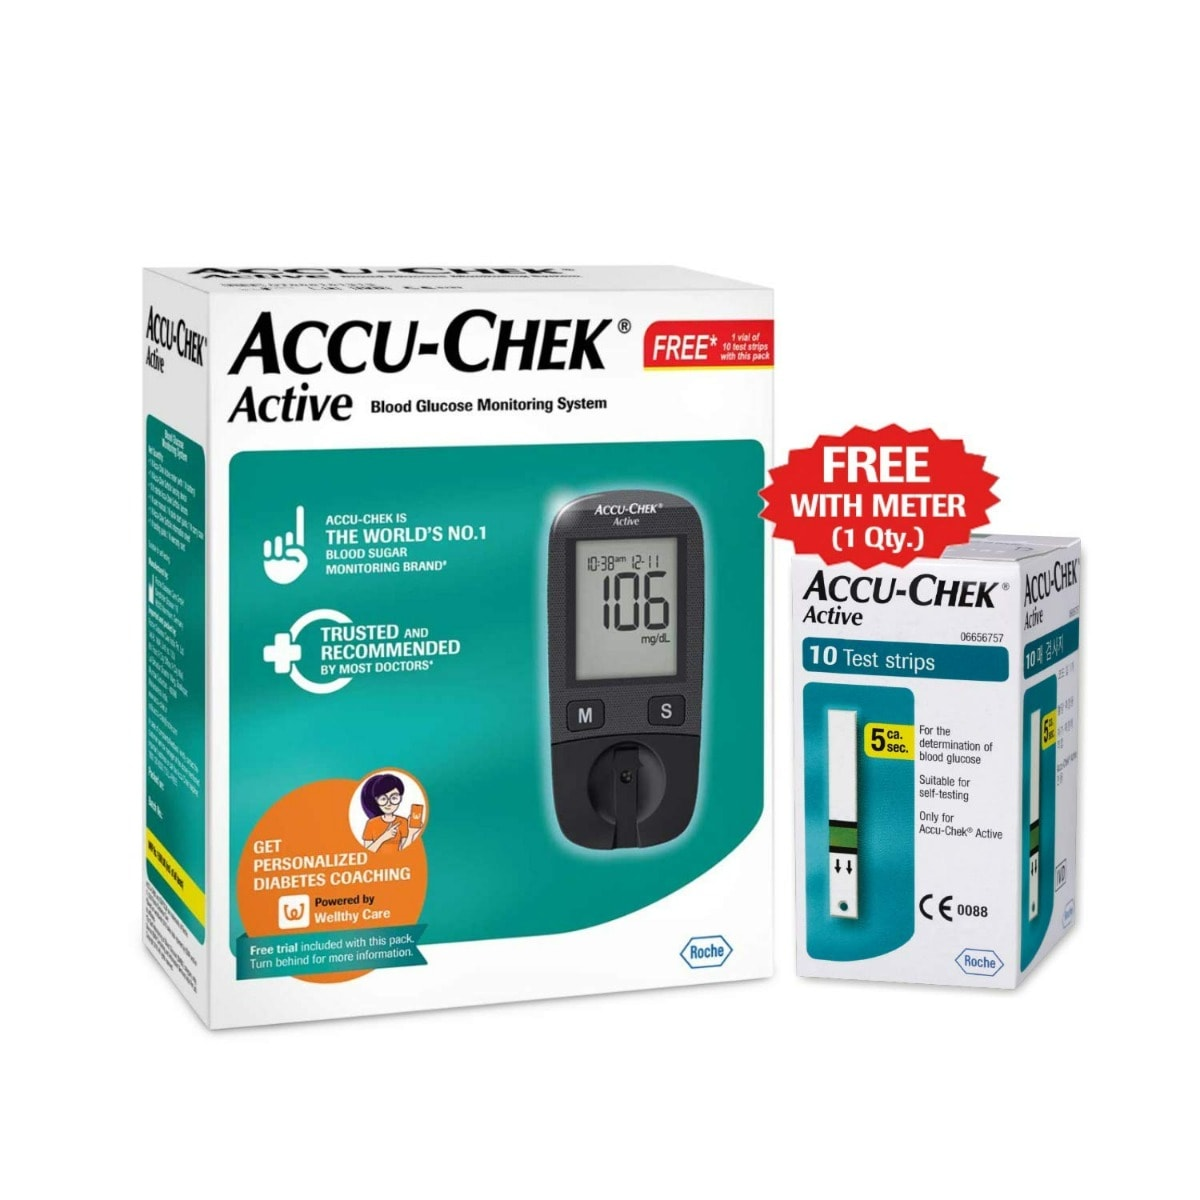 Accu-Chek Active Blood Glucose Monitoring System With 10 Free Test Strips, 1 Kit